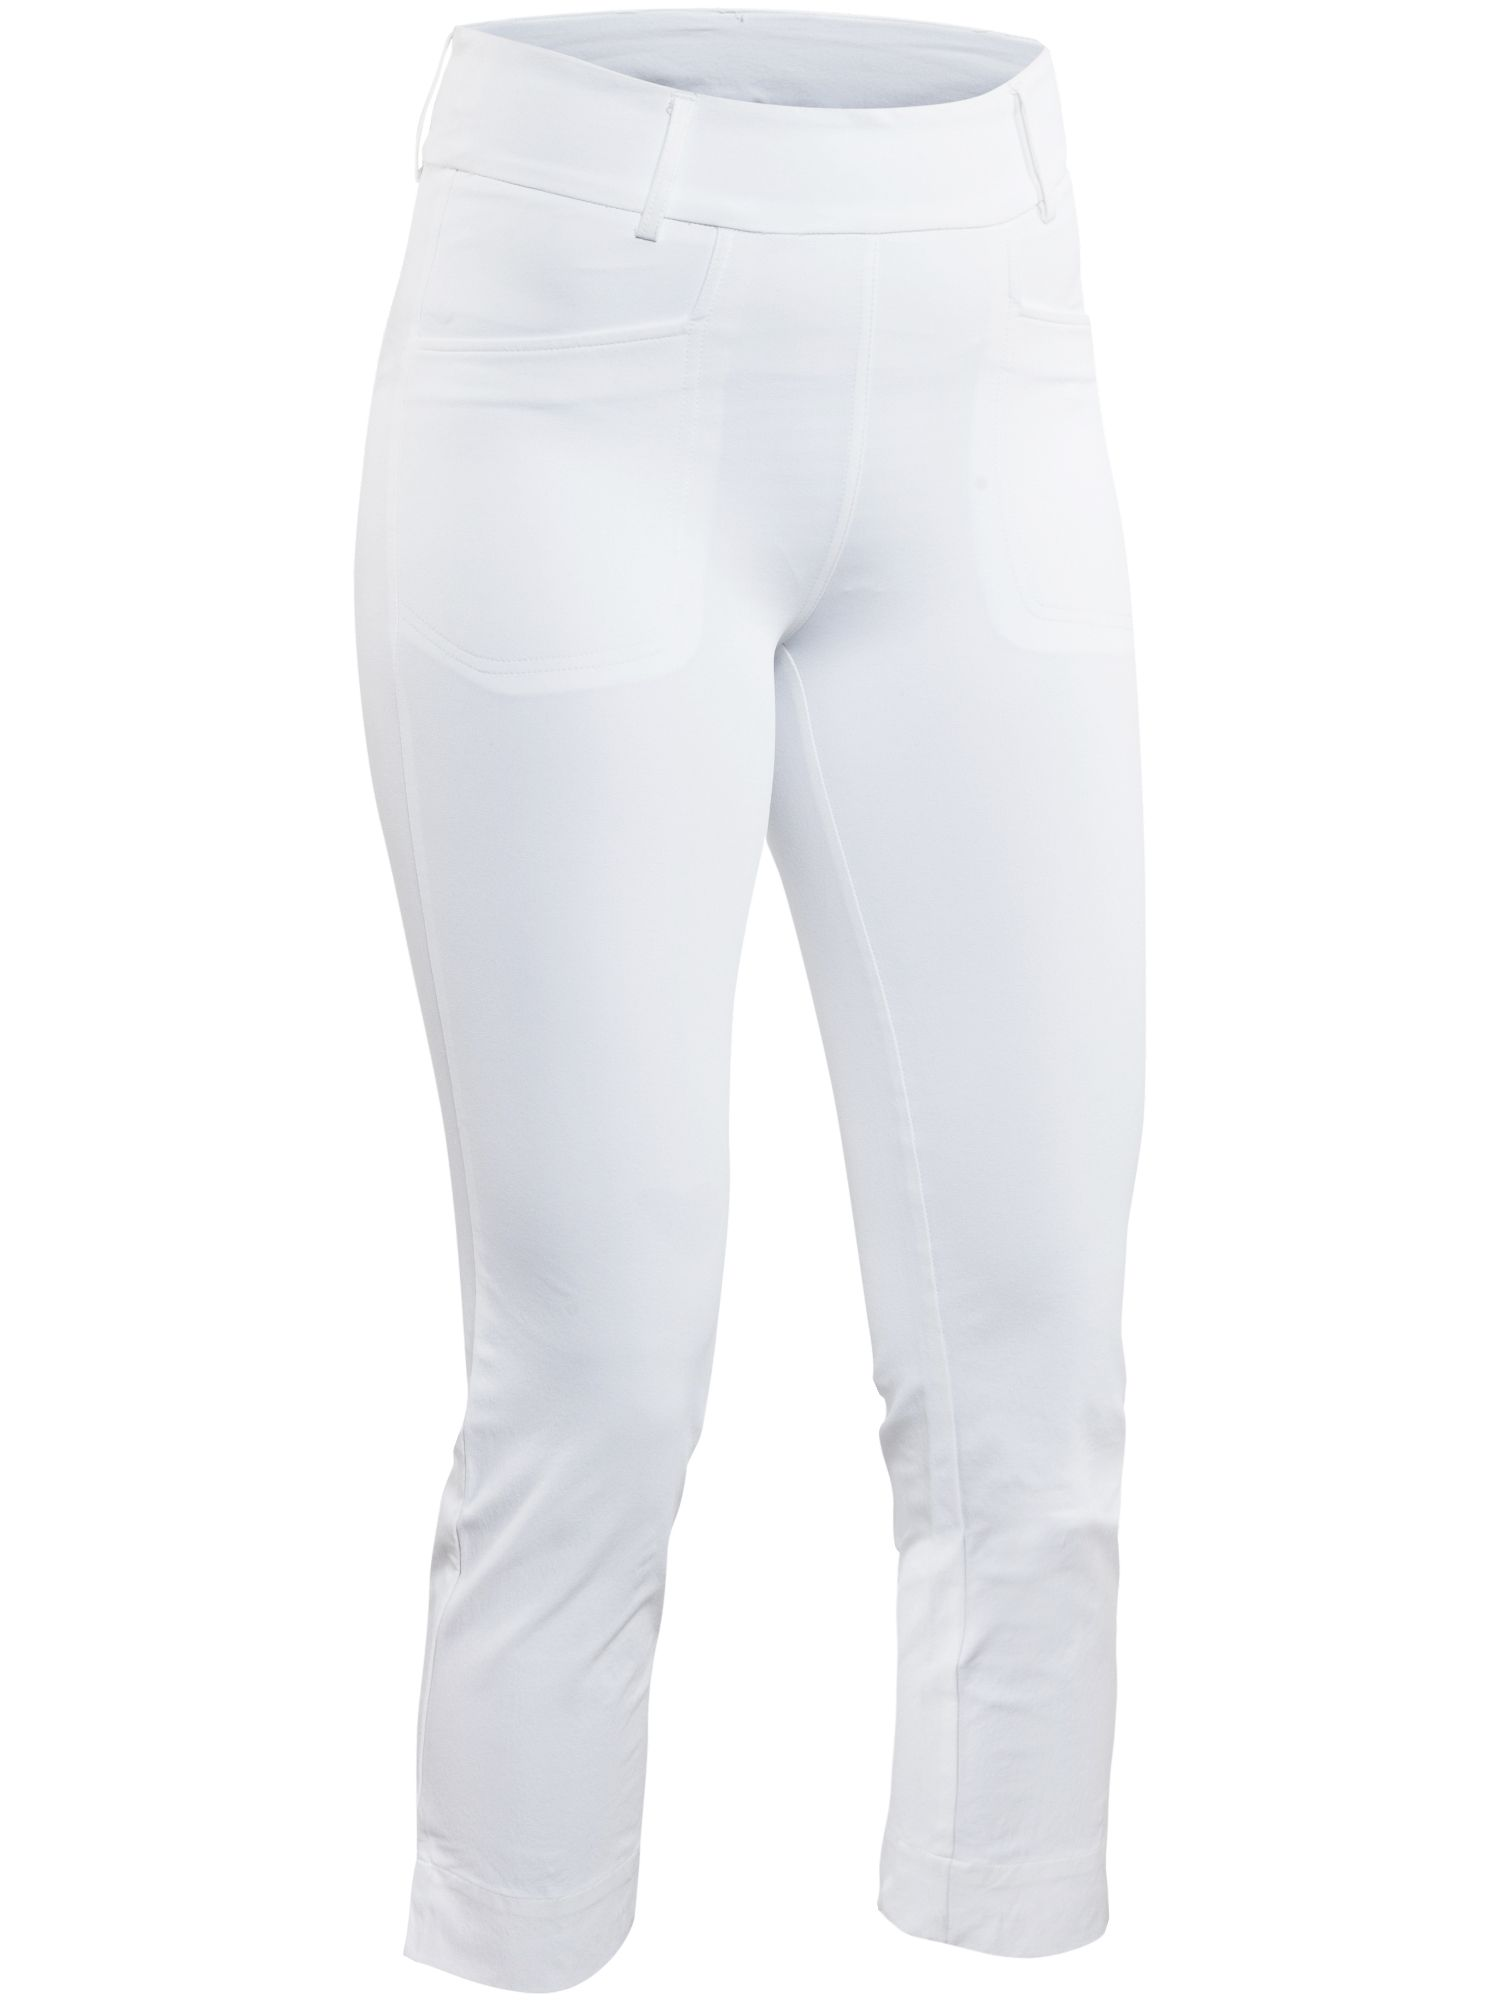 Abacus Abacus Divine 7/8 Trousers, White